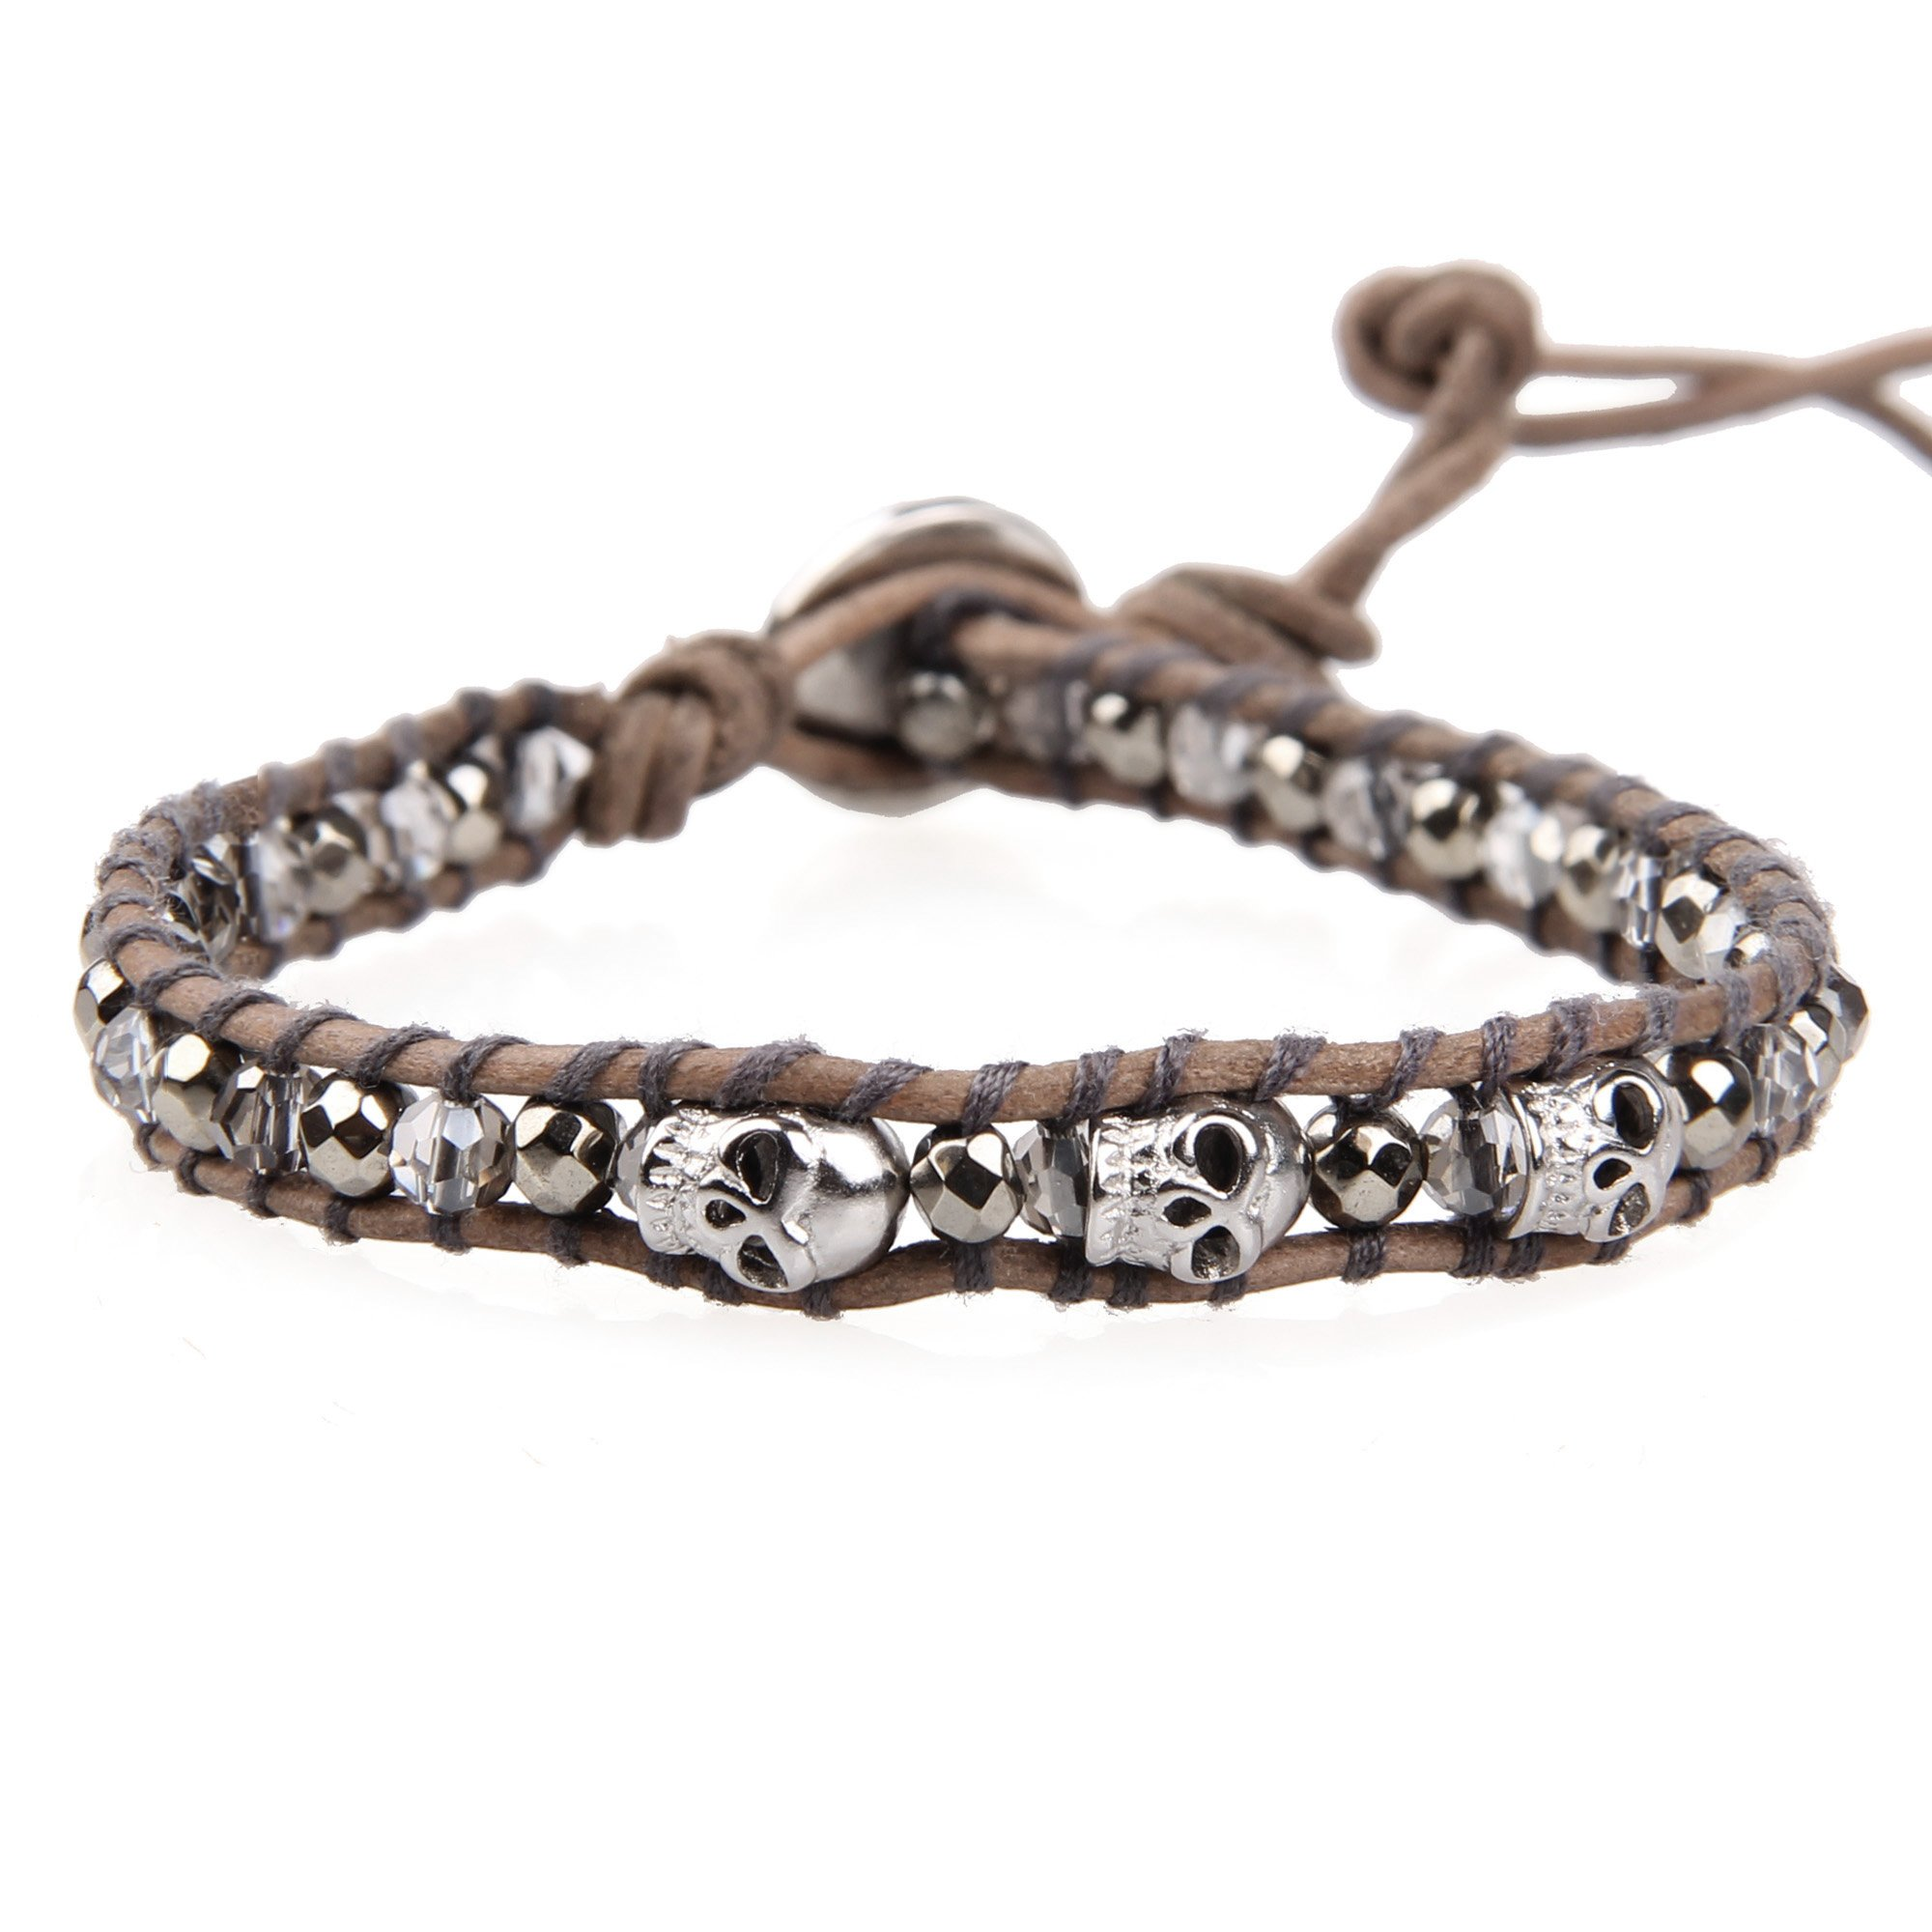 KELITCH Crystal and Hematite Bead Brown Leather Bracelet Wristband with Skull Charm